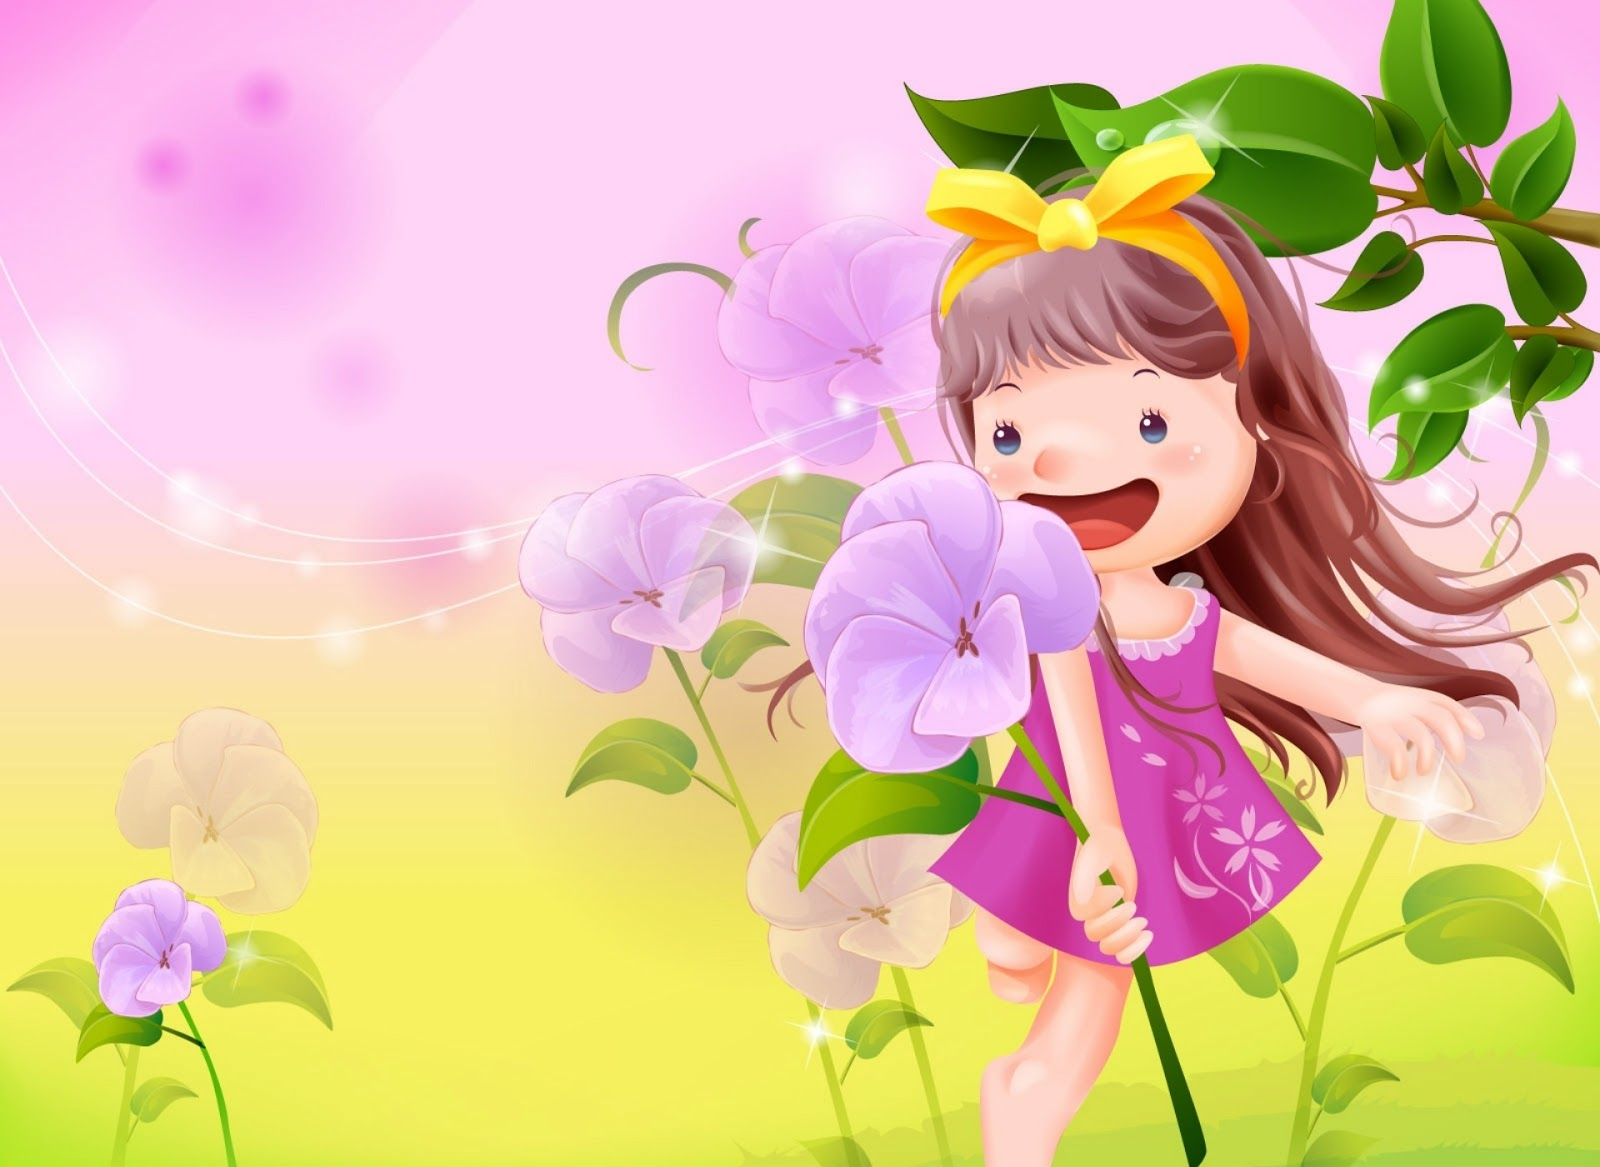 Unduh 6400 Koleksi Background Animasi Lucu HD Gratis